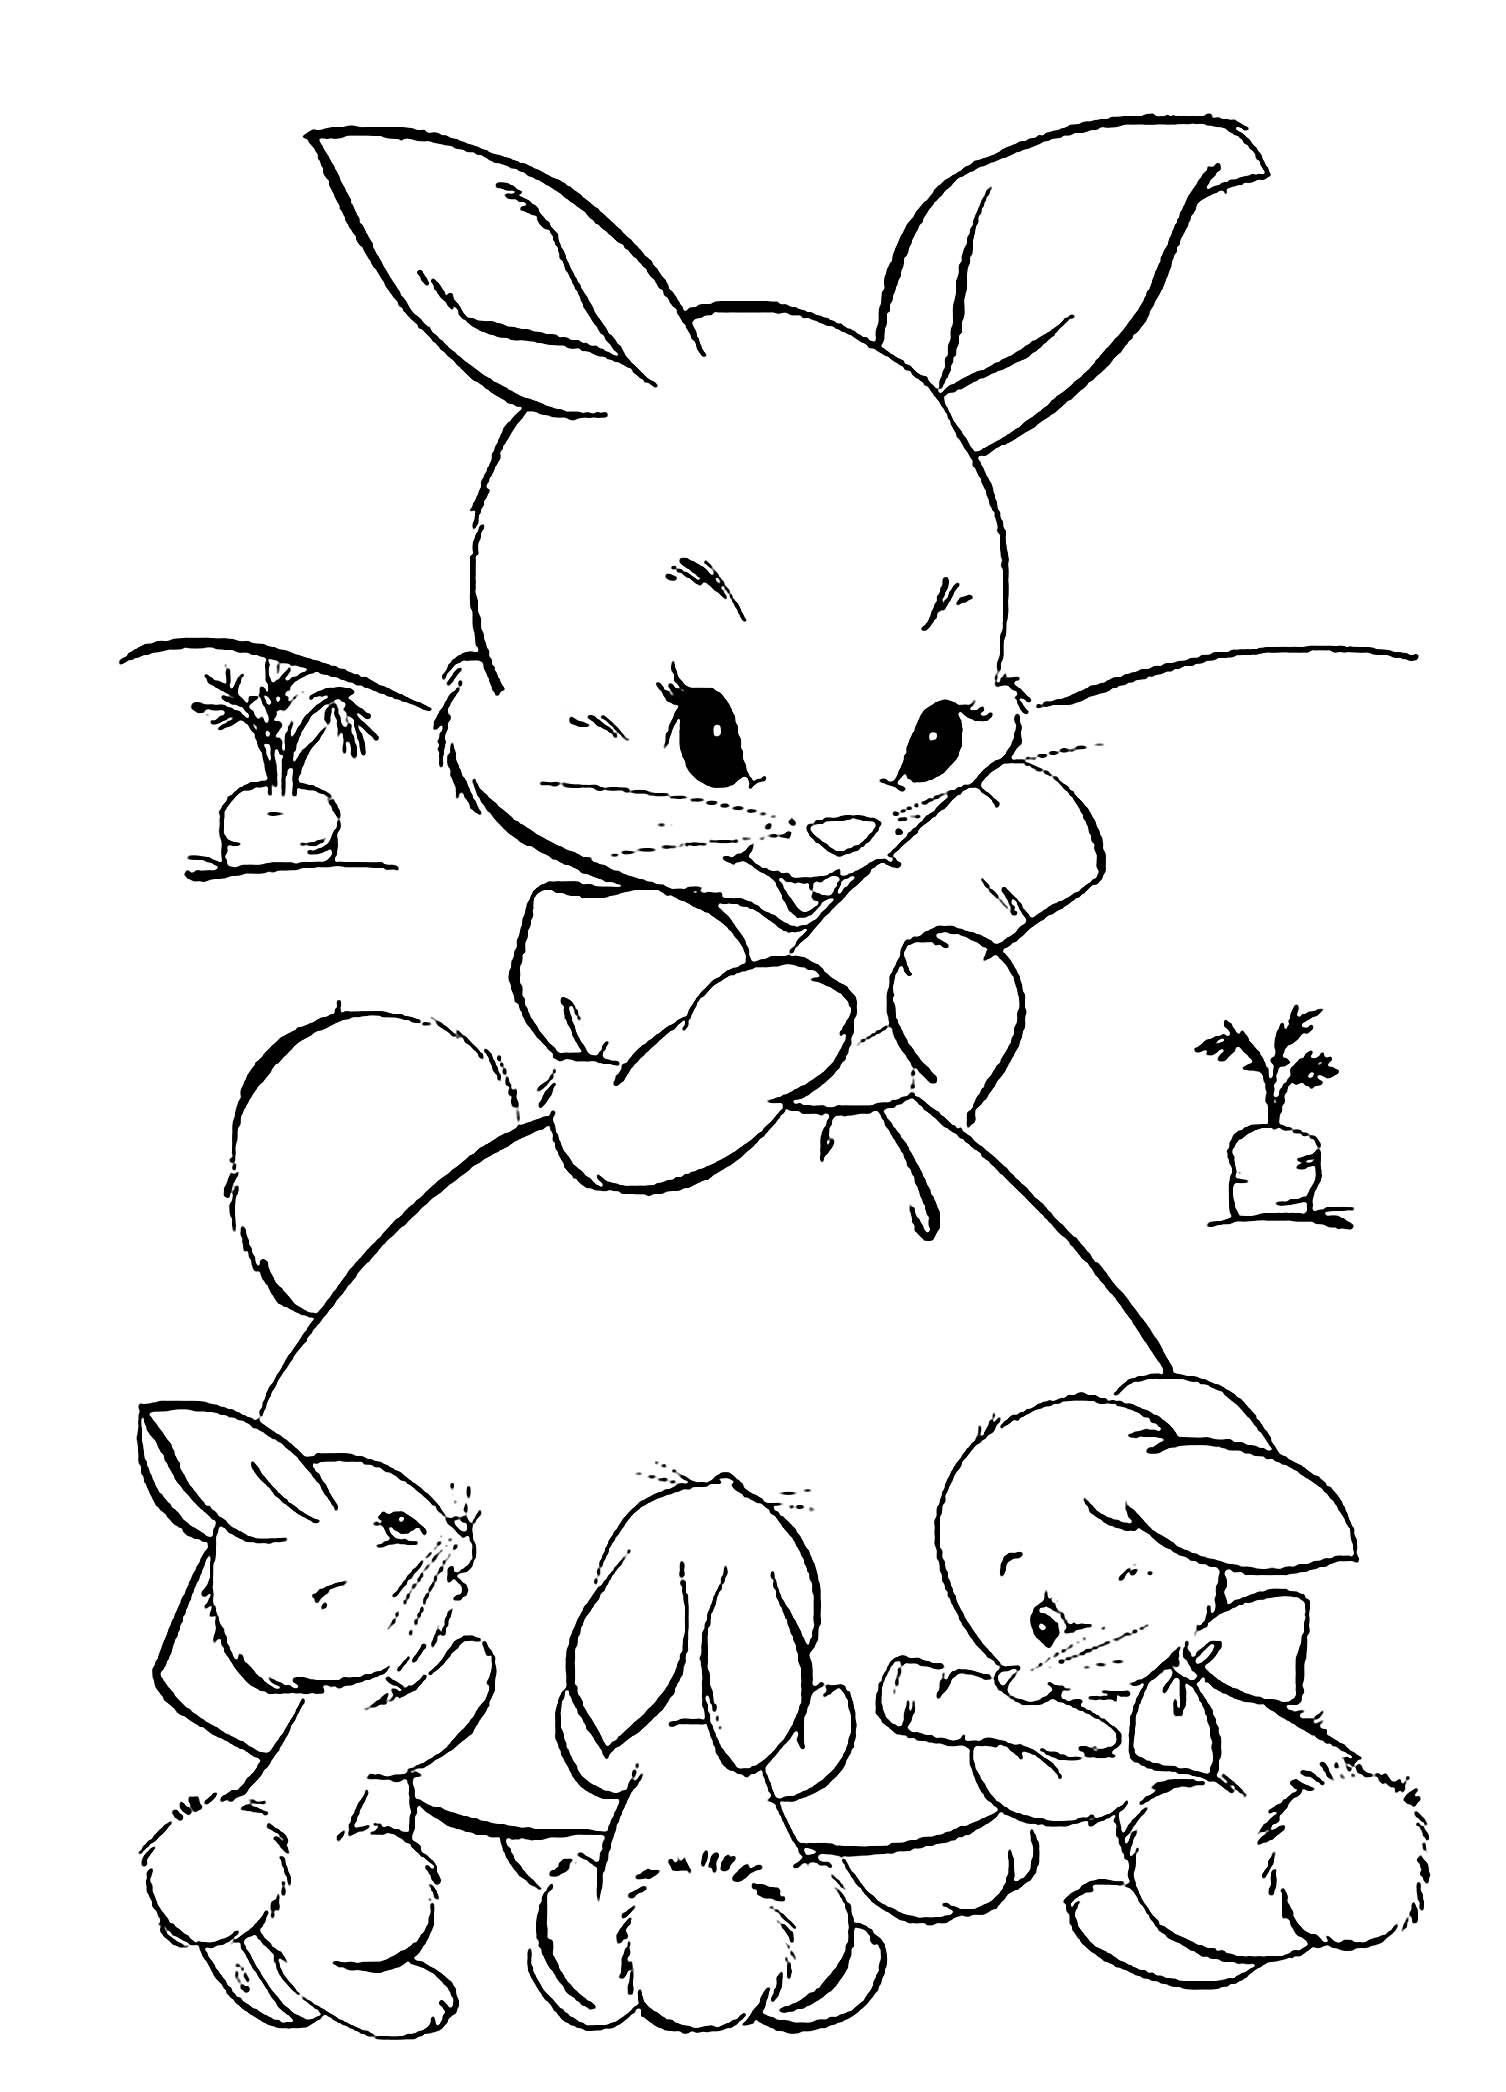 rabbit pictures for kids for colouring bunny coloring pages best coloring pages for kids for rabbit for colouring pictures kids